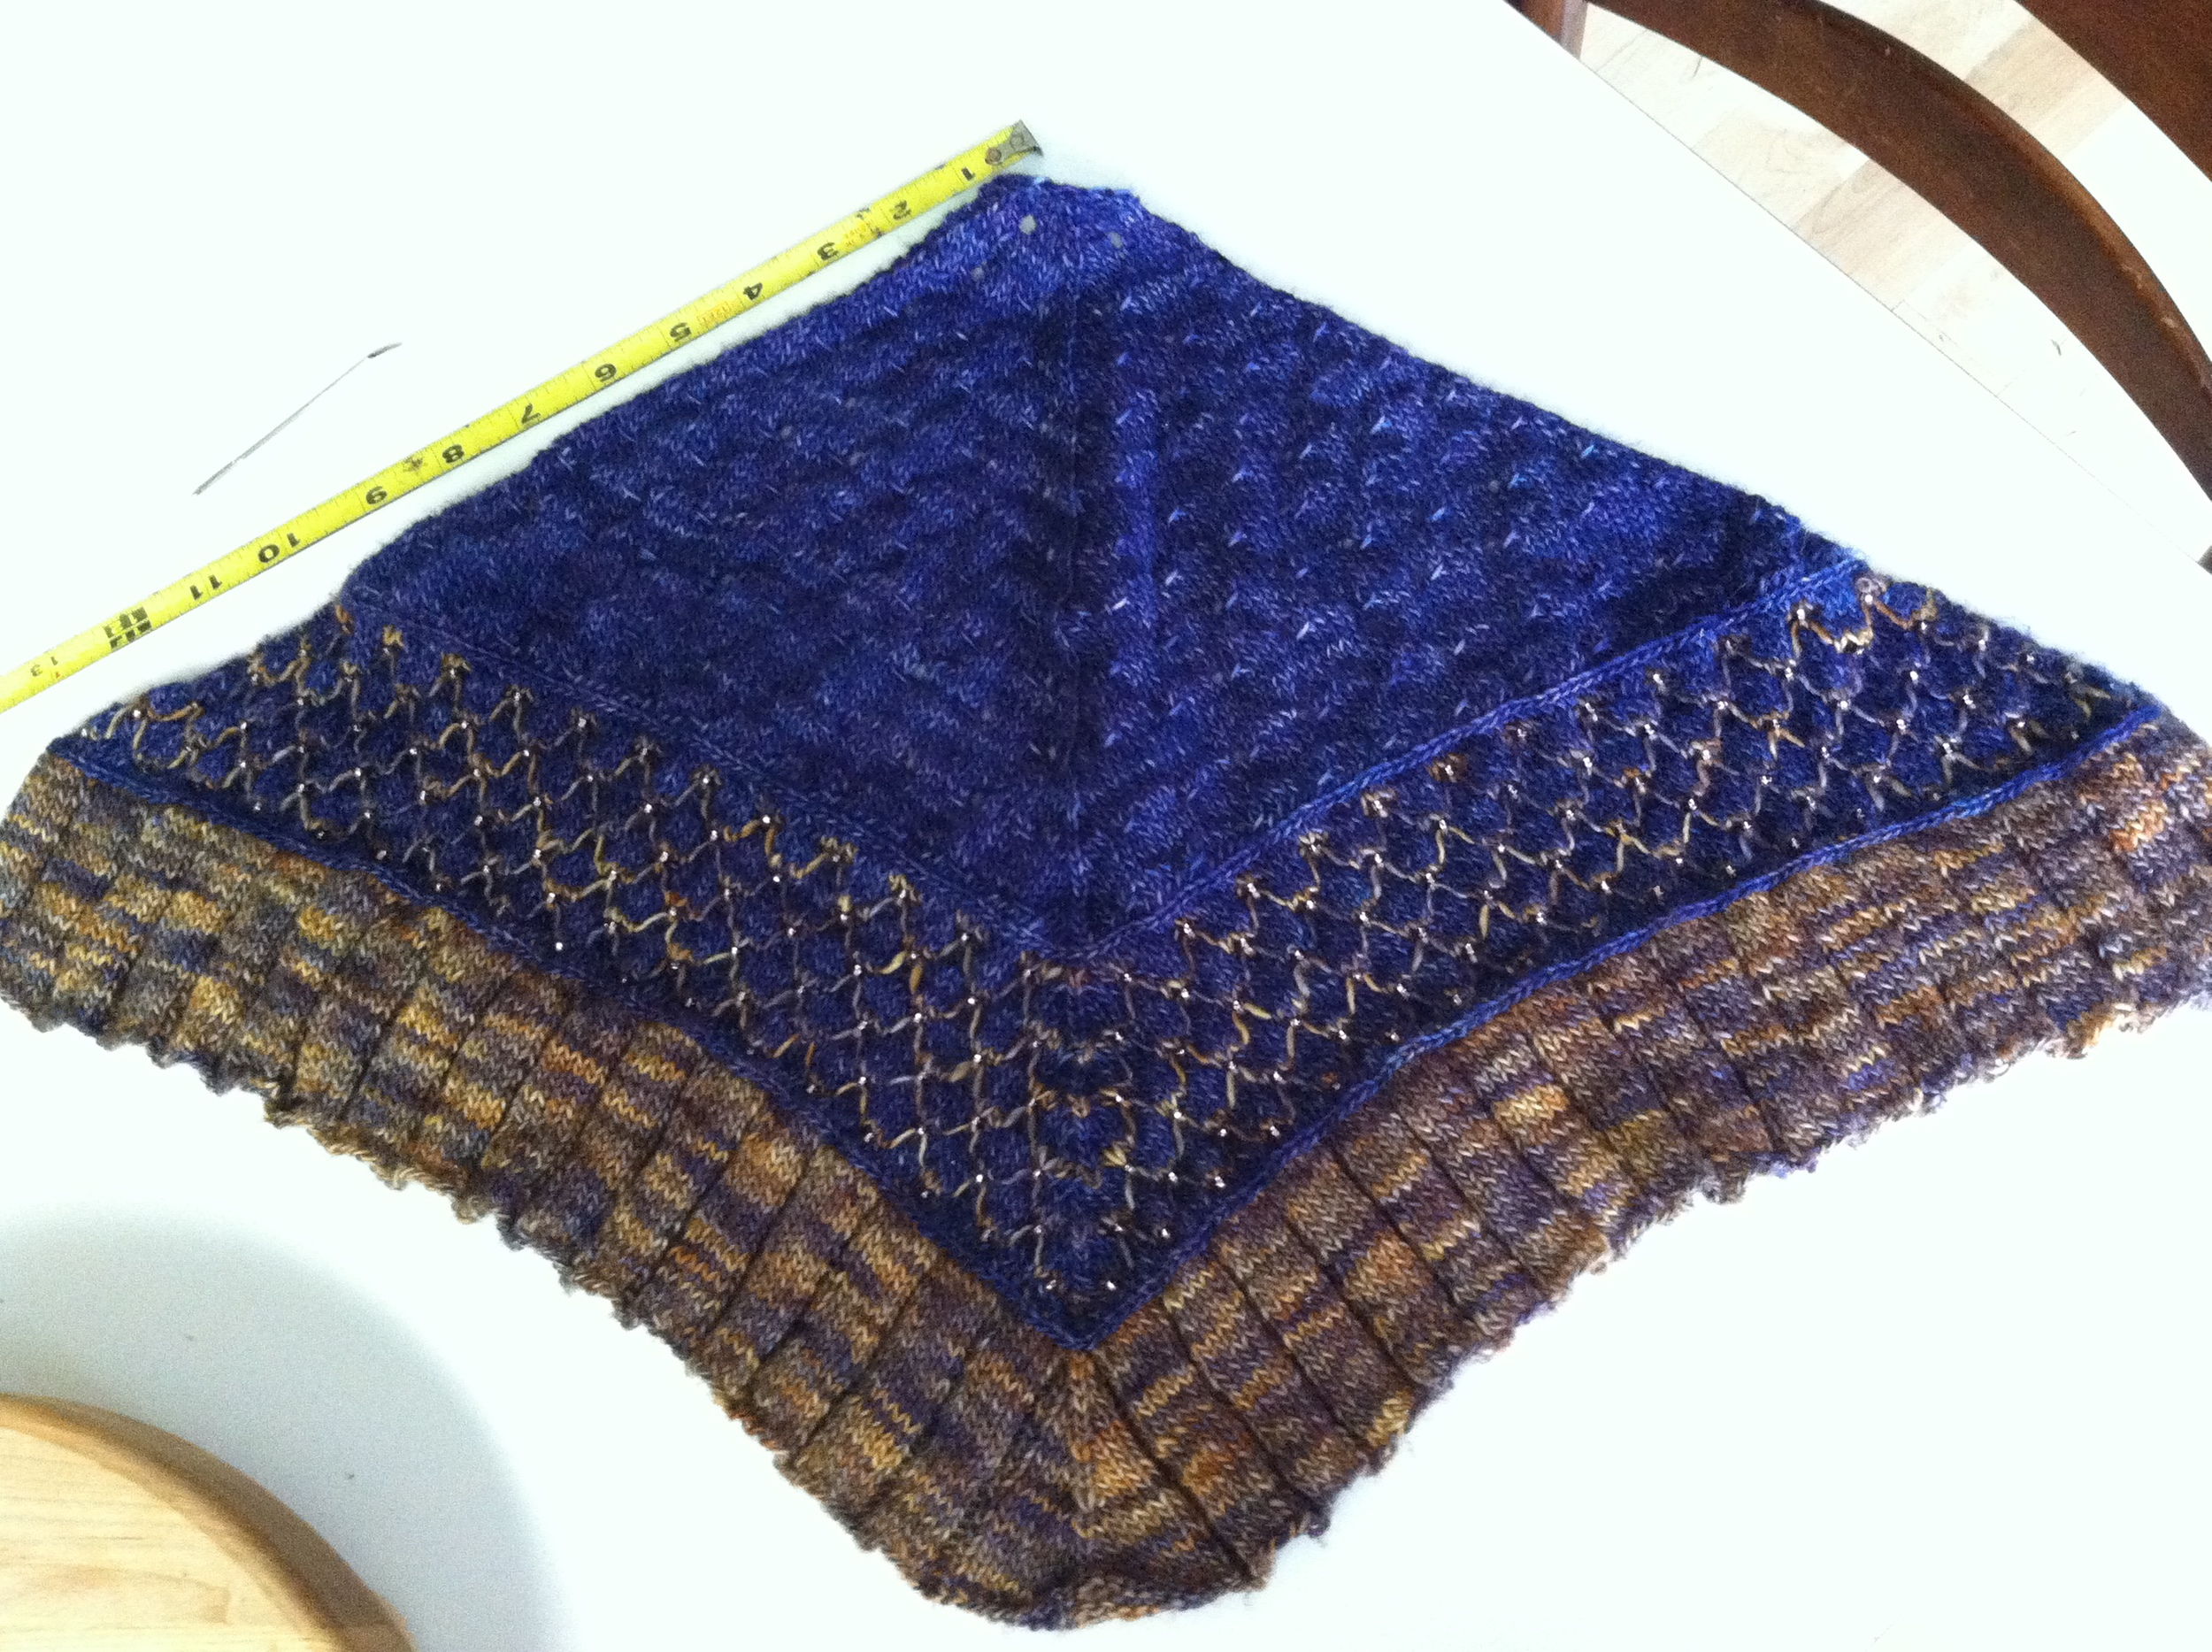 The kercheif before blocking-thought I had blown it but thanks to other knitter's notes in Ravelry website, I persevered and blocked it - measurements are now 38 inches x 16 inches